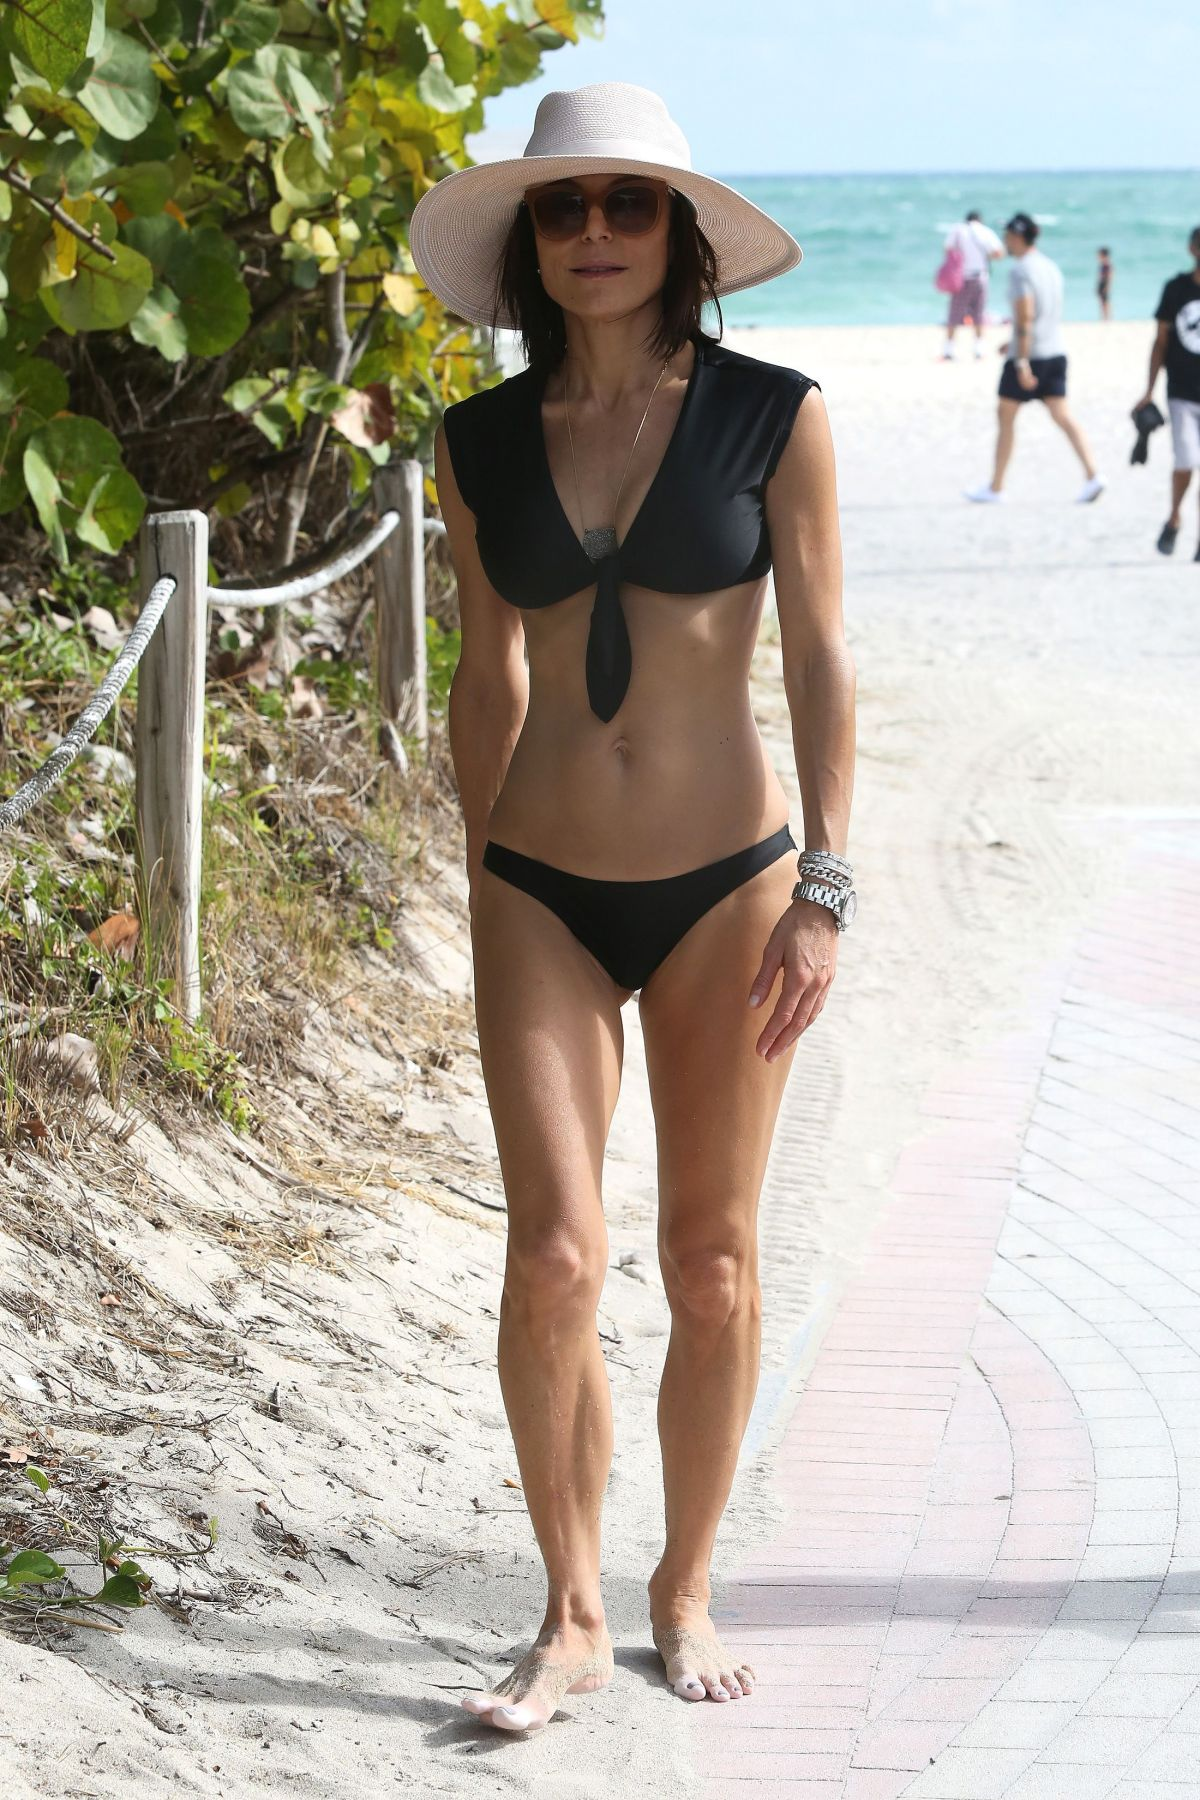 BETHENNY FRANKEL in Bikini on the Beach in Miami 12/05/2016   bethenny-frankel-in-bikini-on-the-beach-in-miami-12-05-2016_15